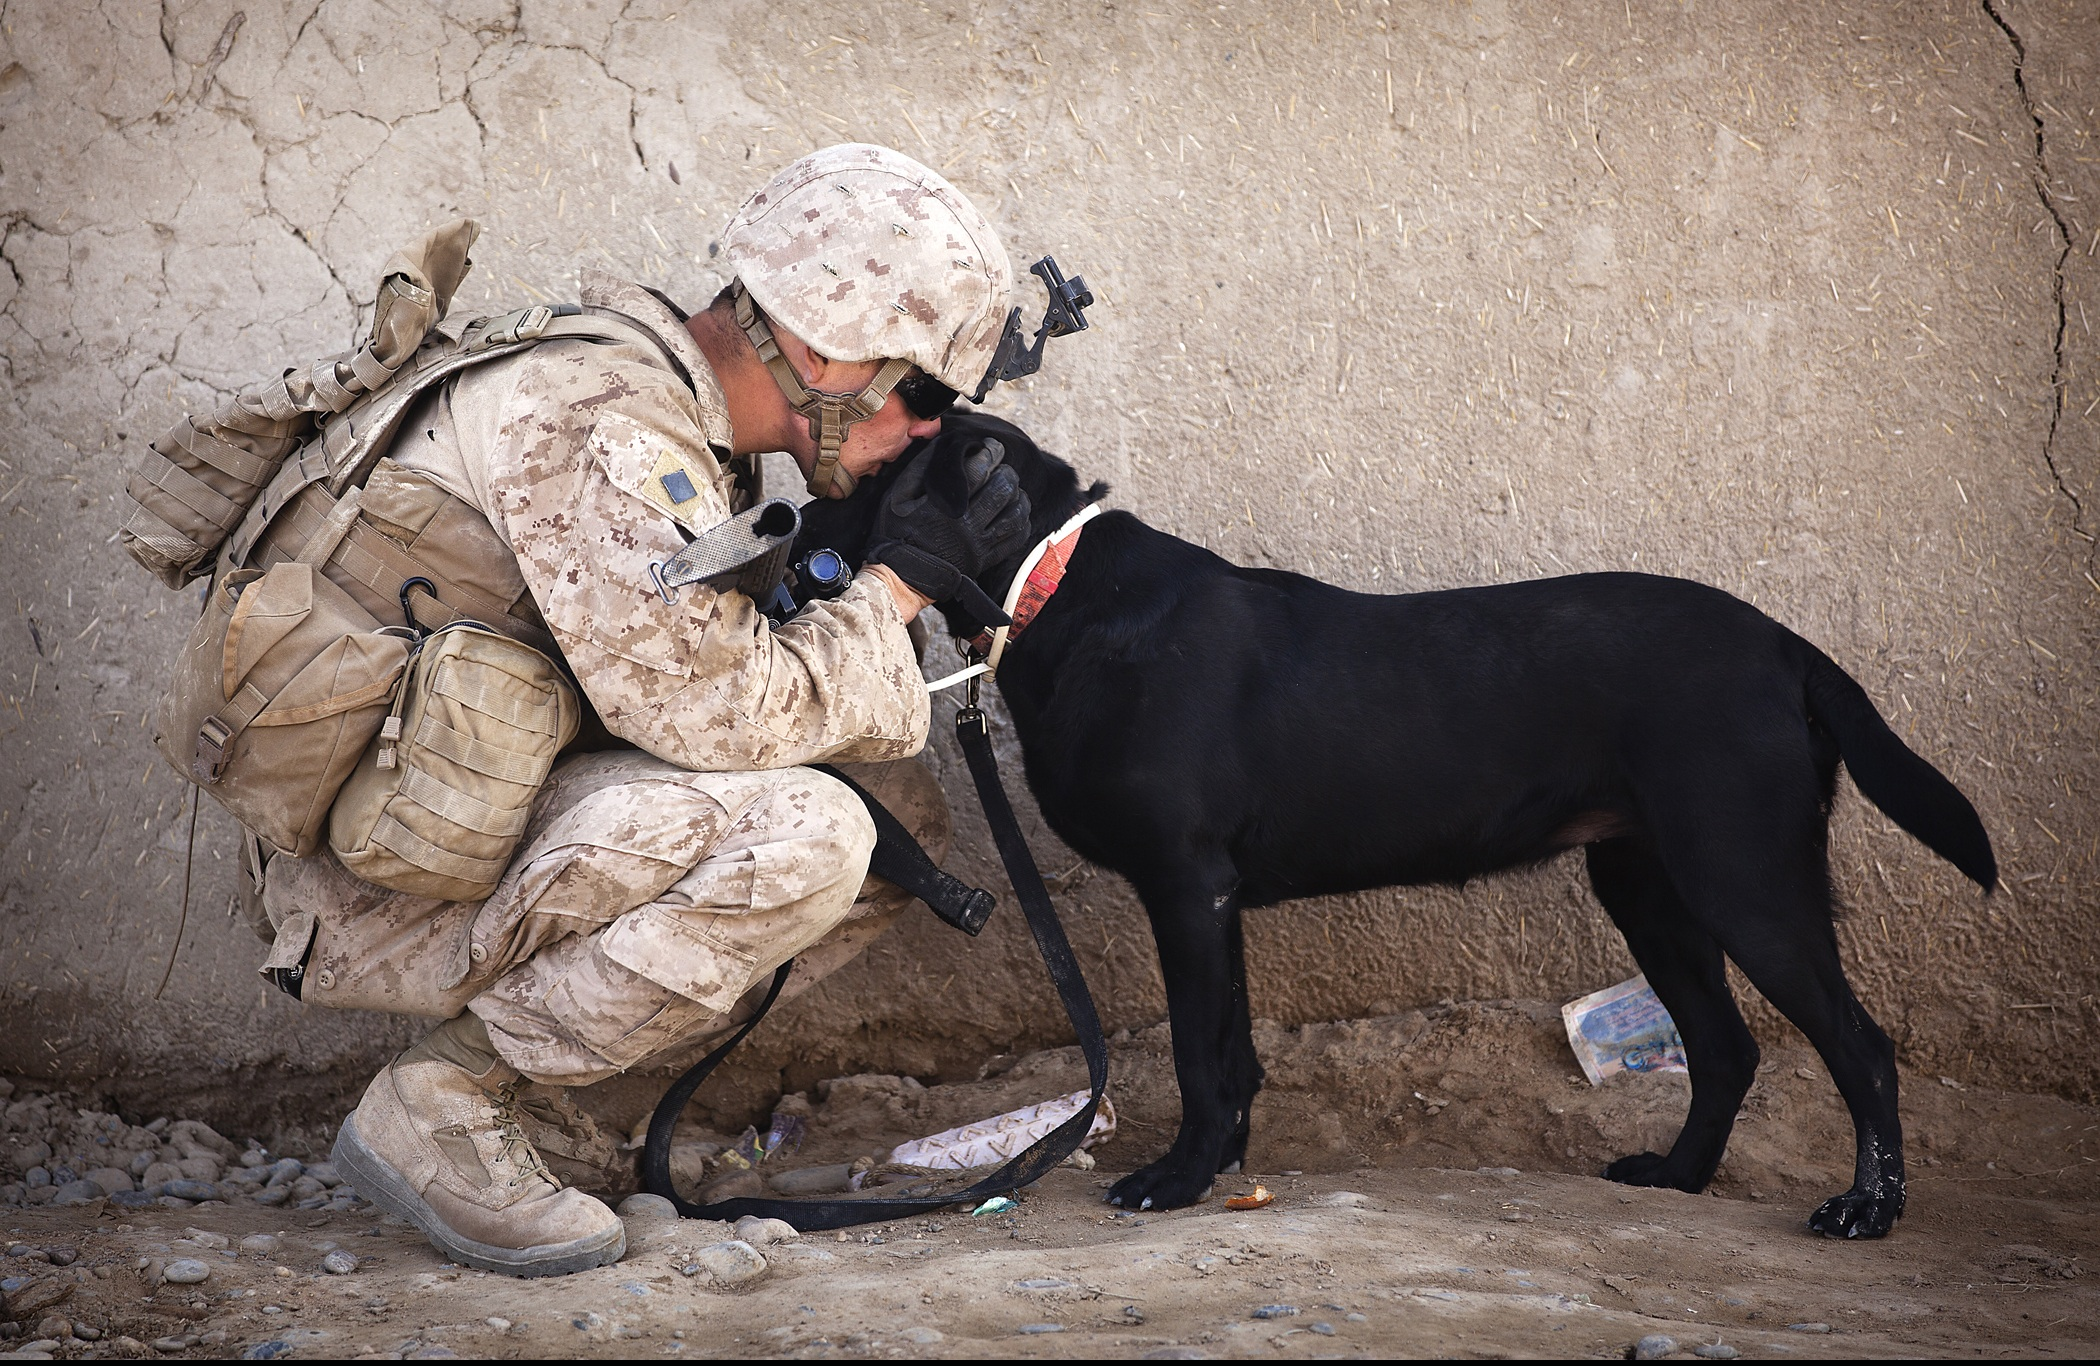 soldier-dog-companion-service.jpg (2100×1366)